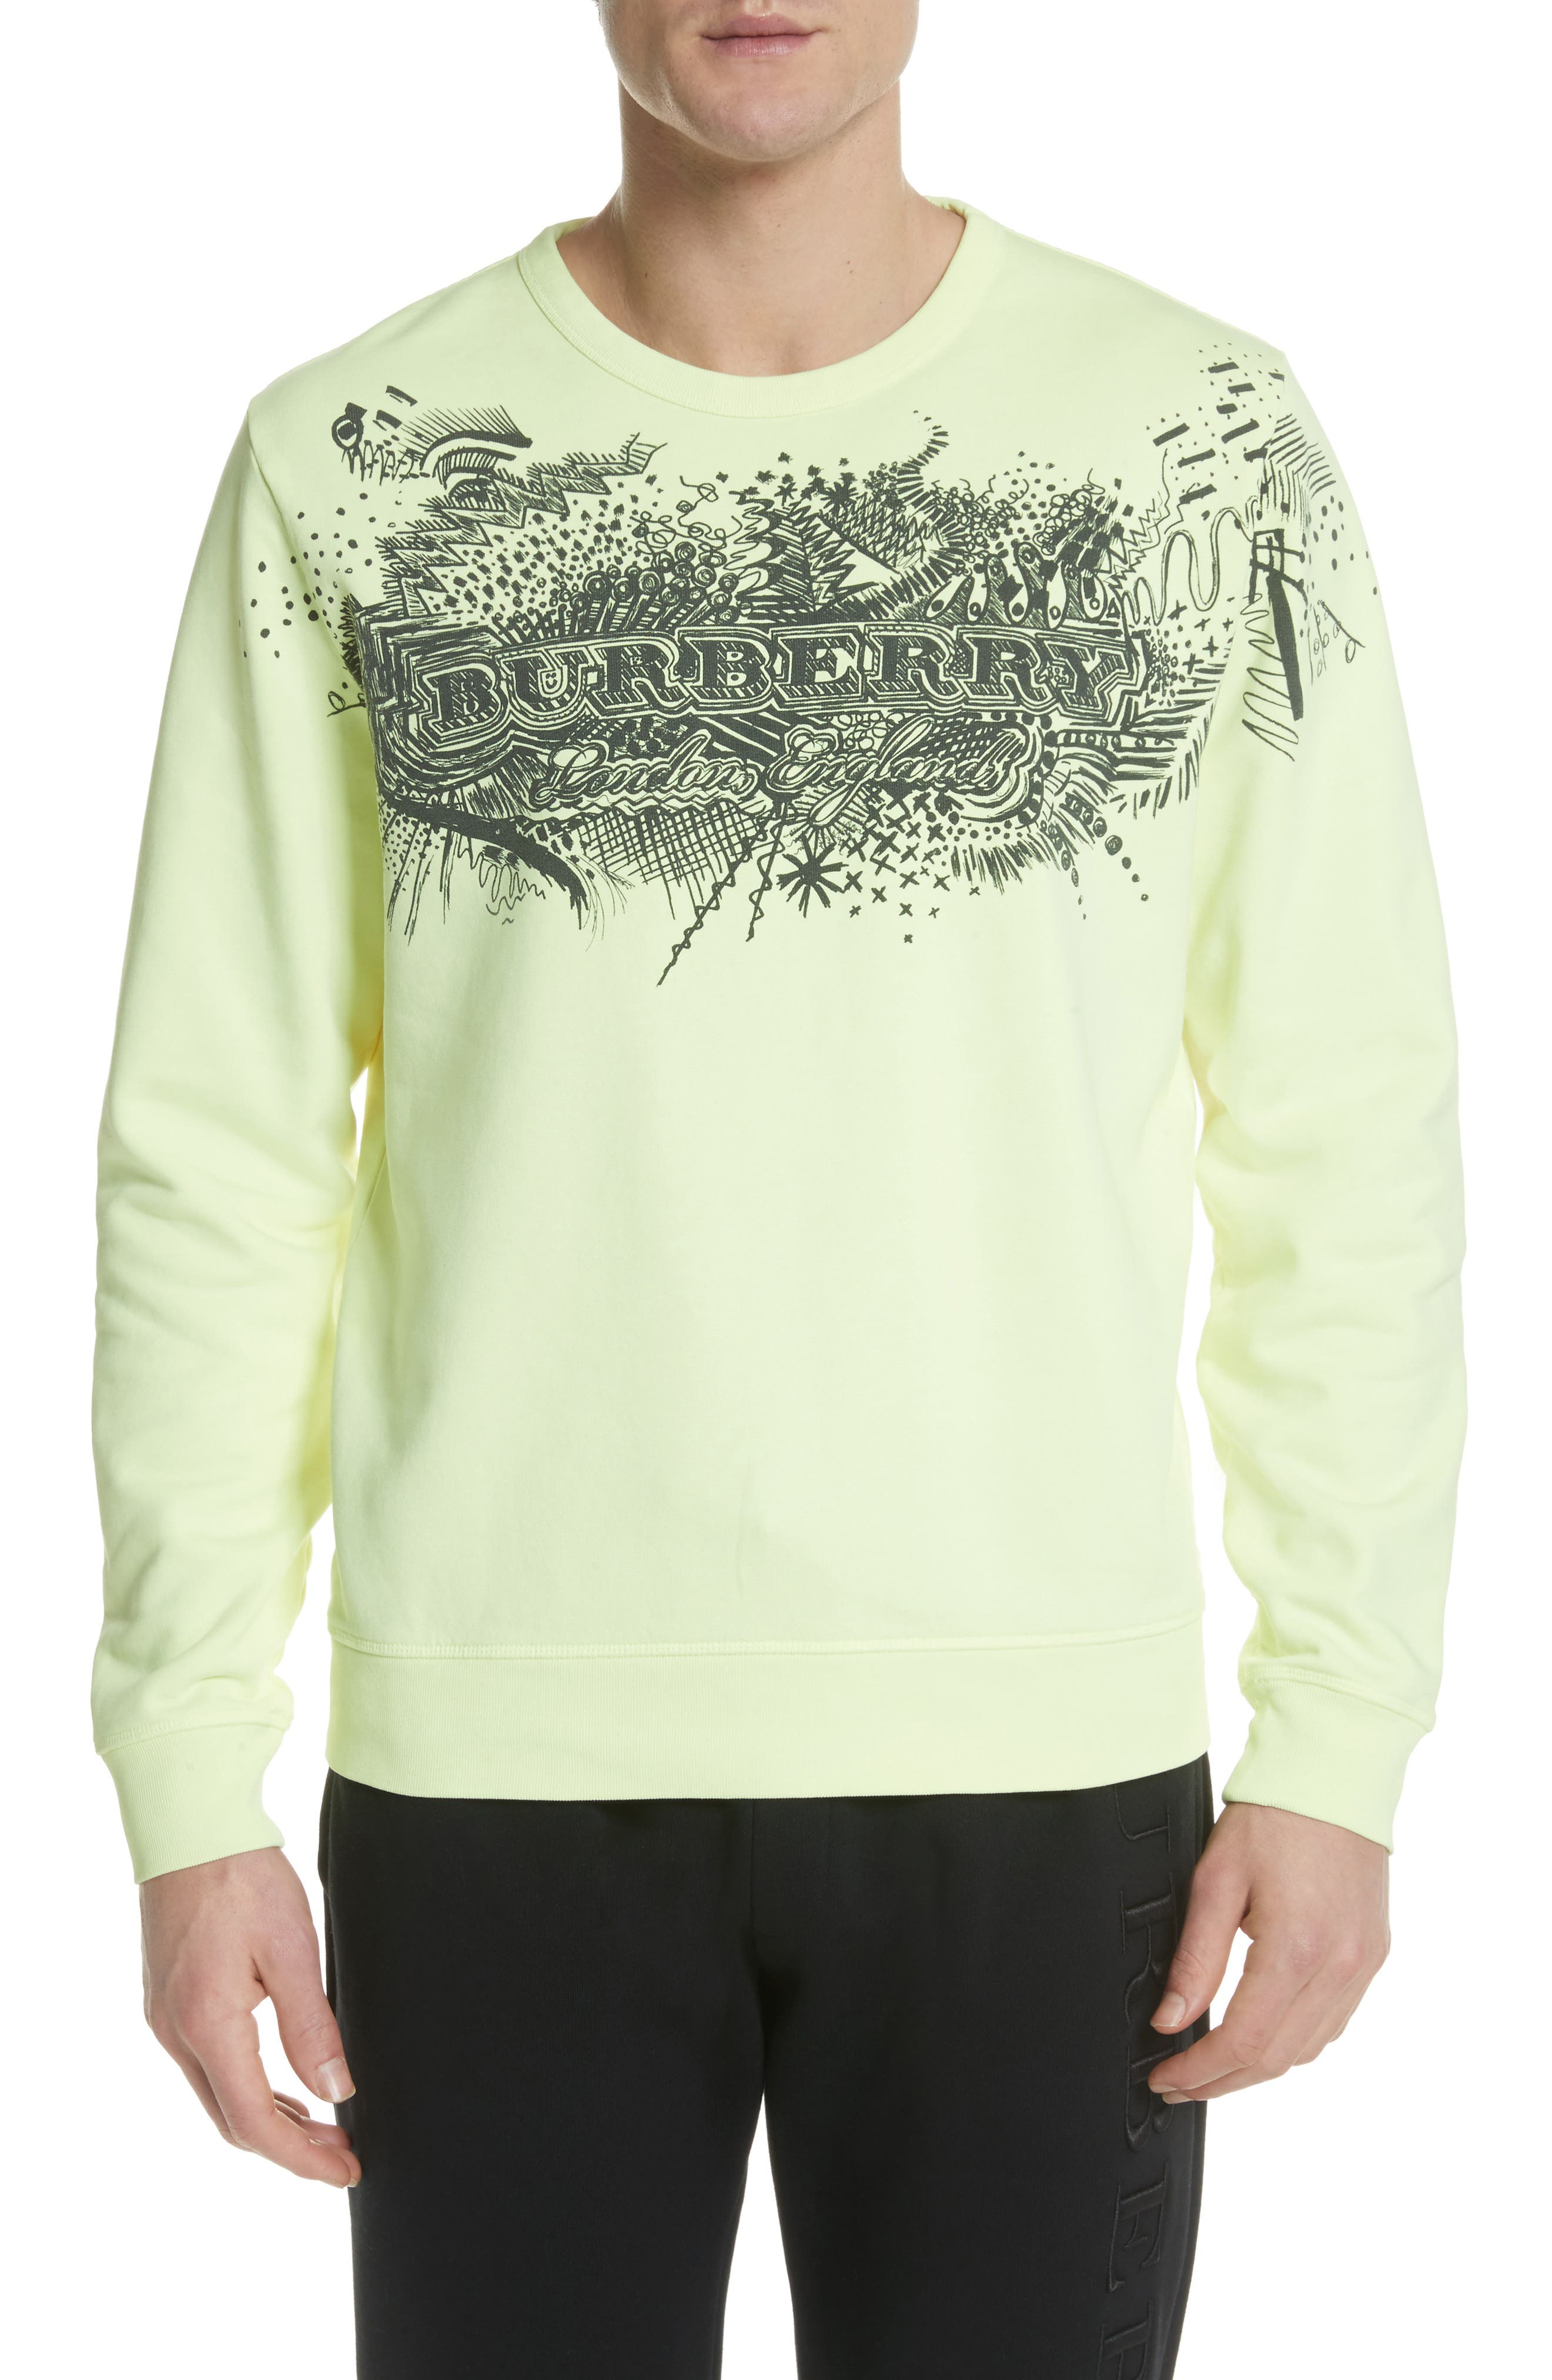 Sauer Graphic Crewneck Sweatshirt,                             Main thumbnail 1, color,                             Bright Lemon